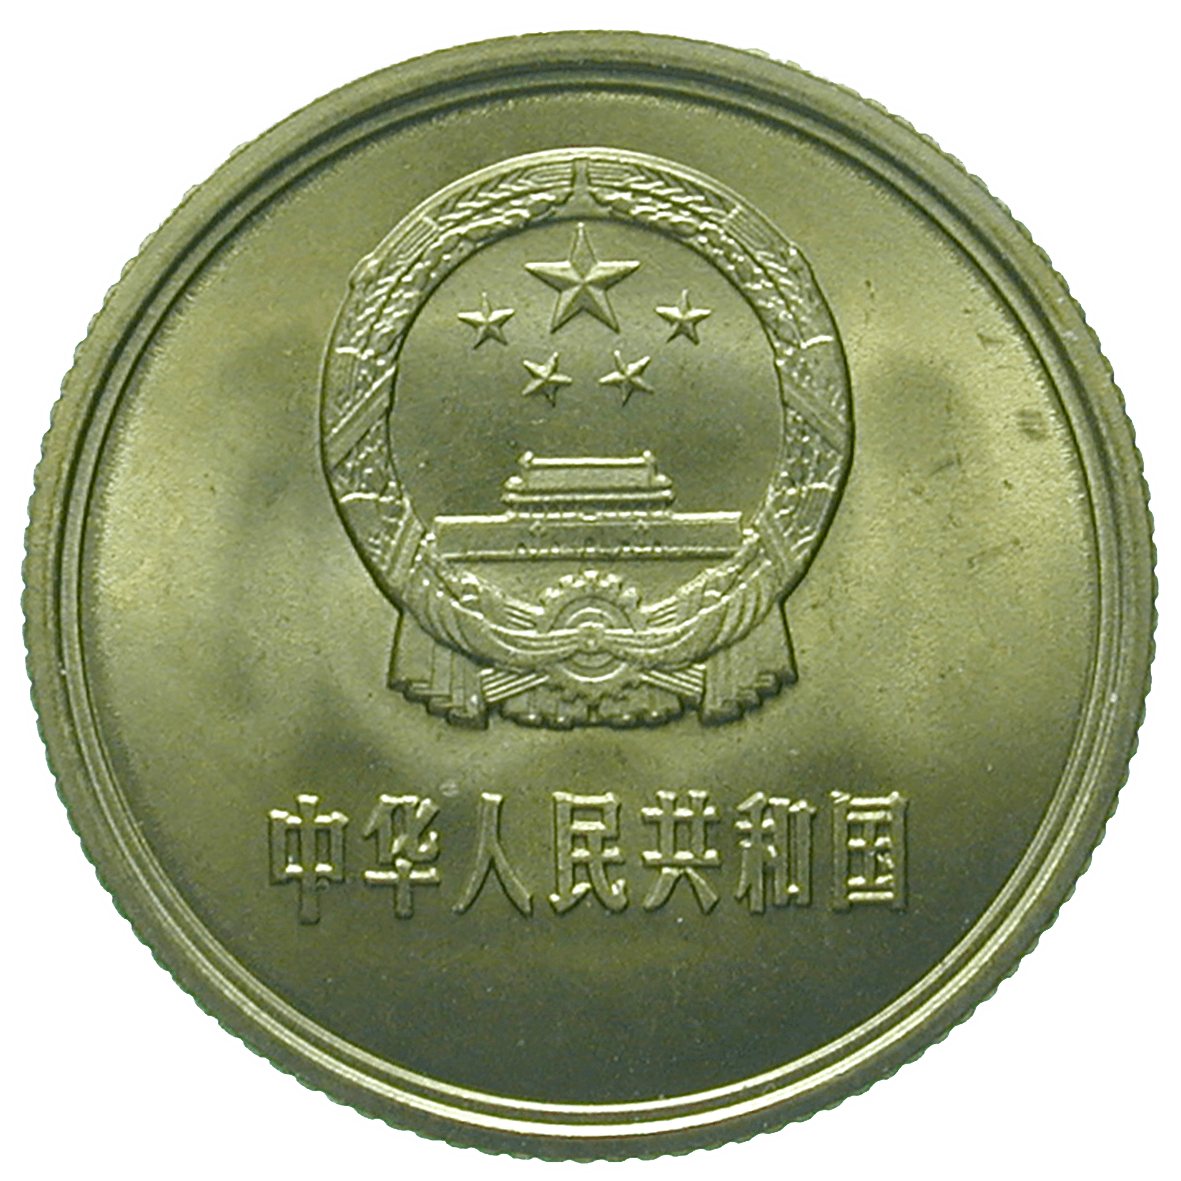 Volksrepublik China, 1 Jiao 1980 (obverse)